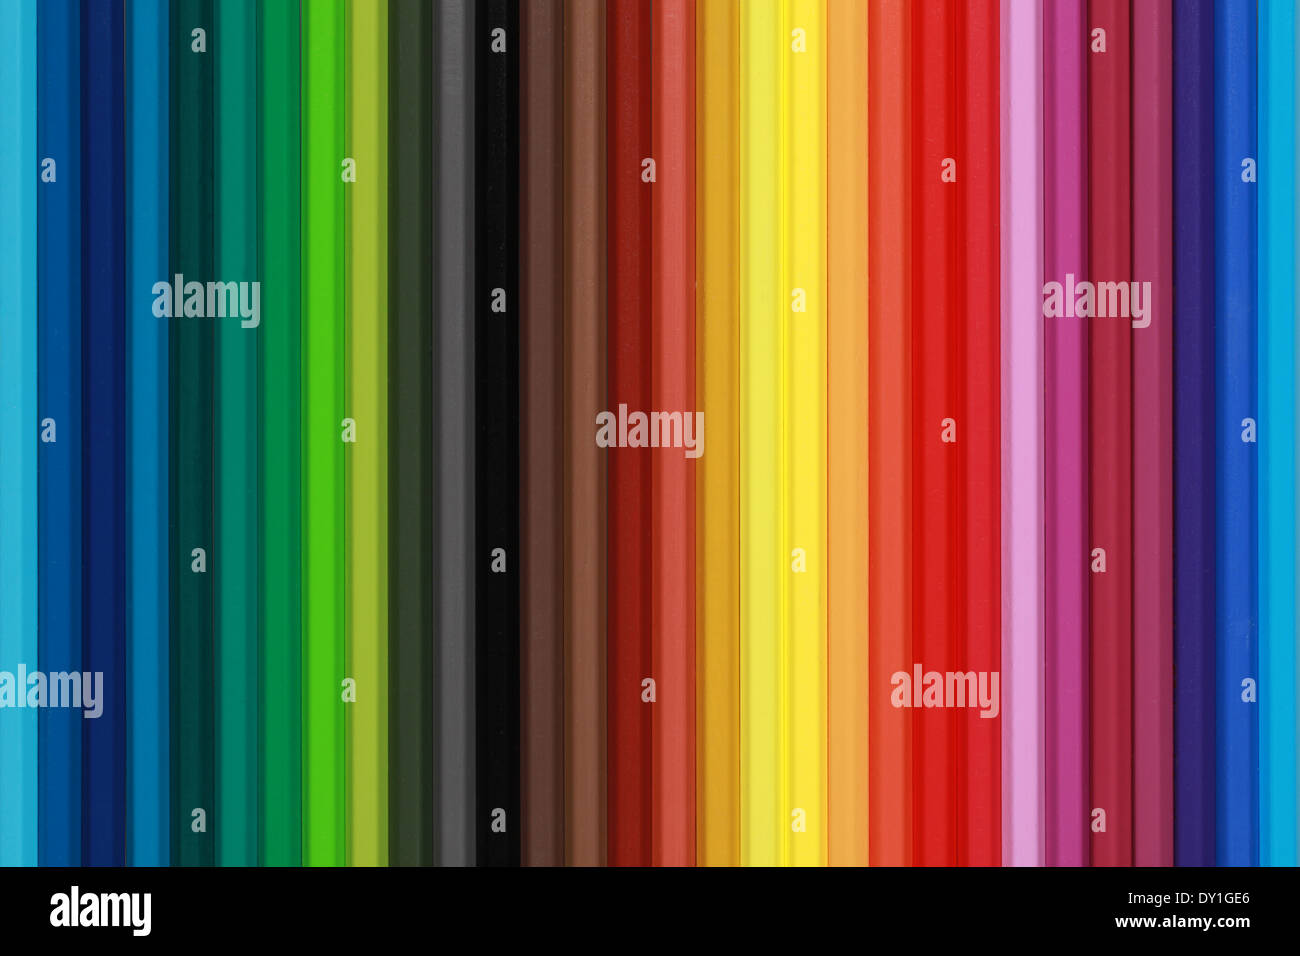 Collection of colored pencils forming a background - Stock Image